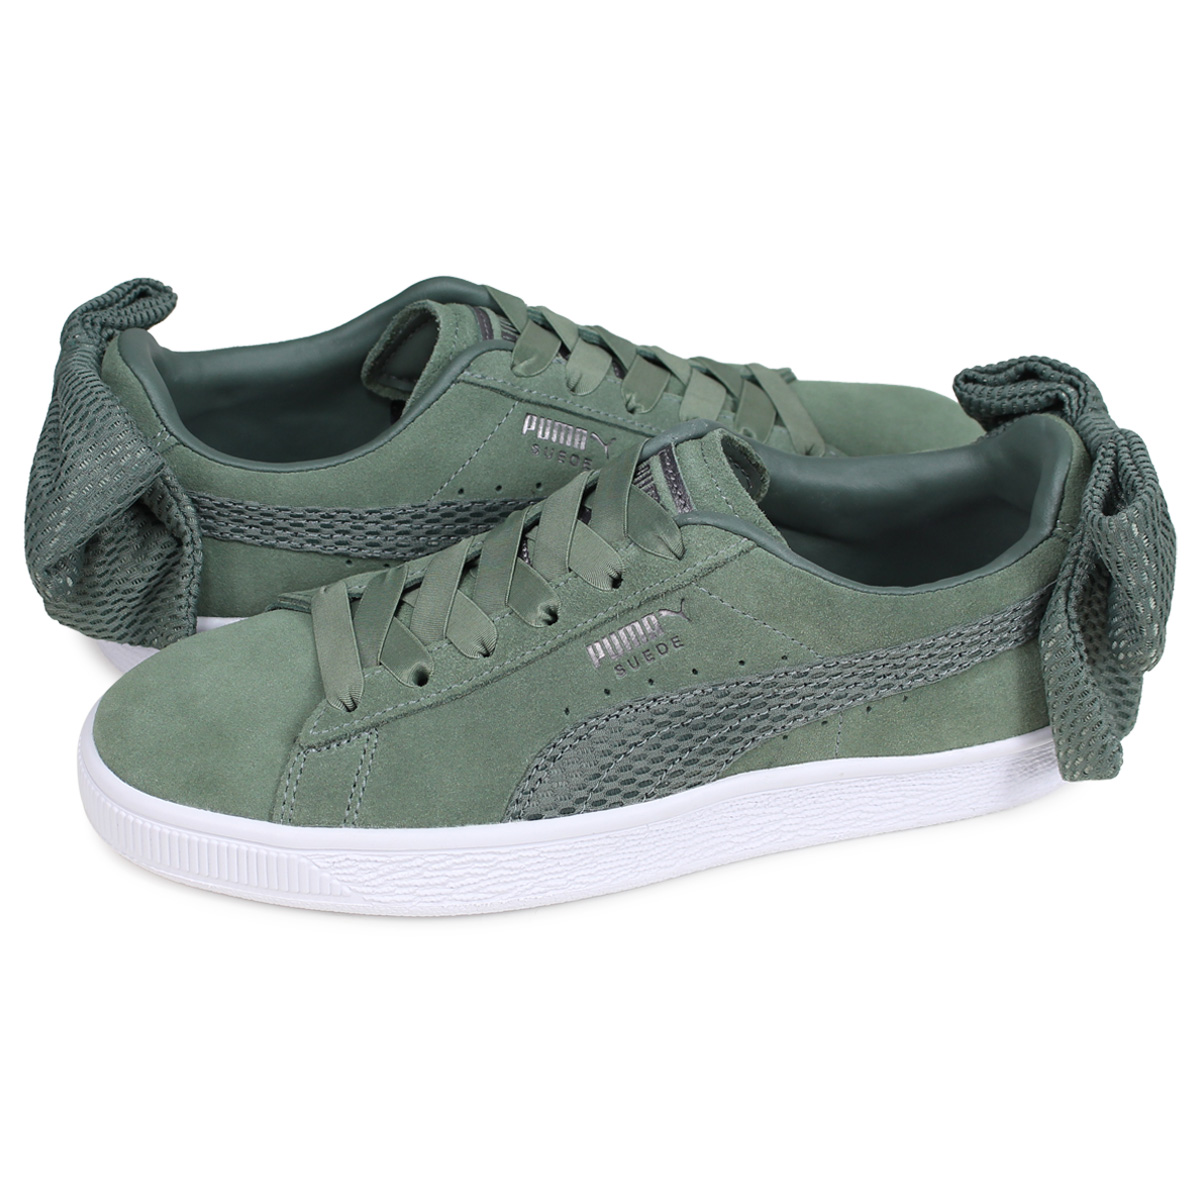 PUMA WMNS SUEDE BOW UPRISING Puma suede bow tie sneakers Lady's green 36745502